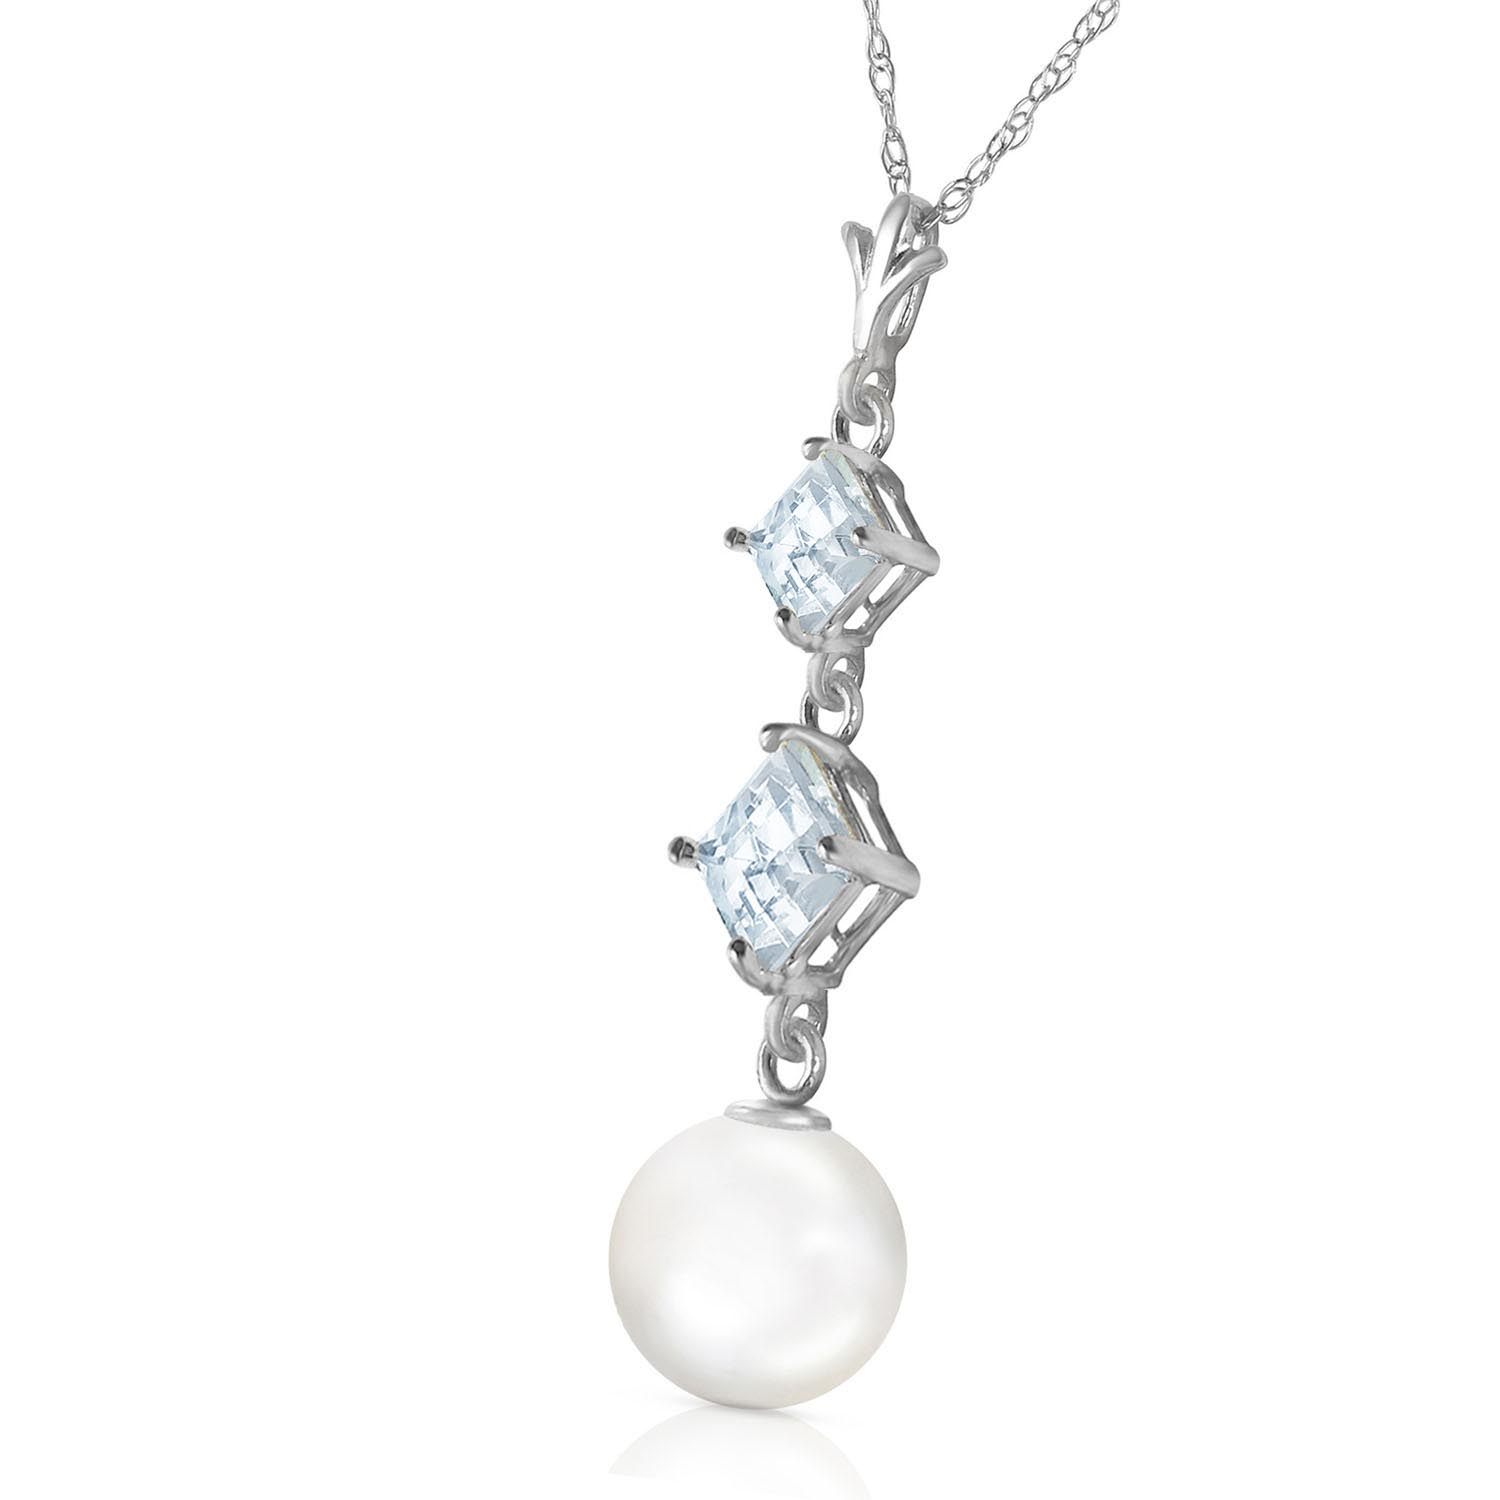 Pearl and Aquamarine Pendant Necklace 3.25ctw in 14K White Gold